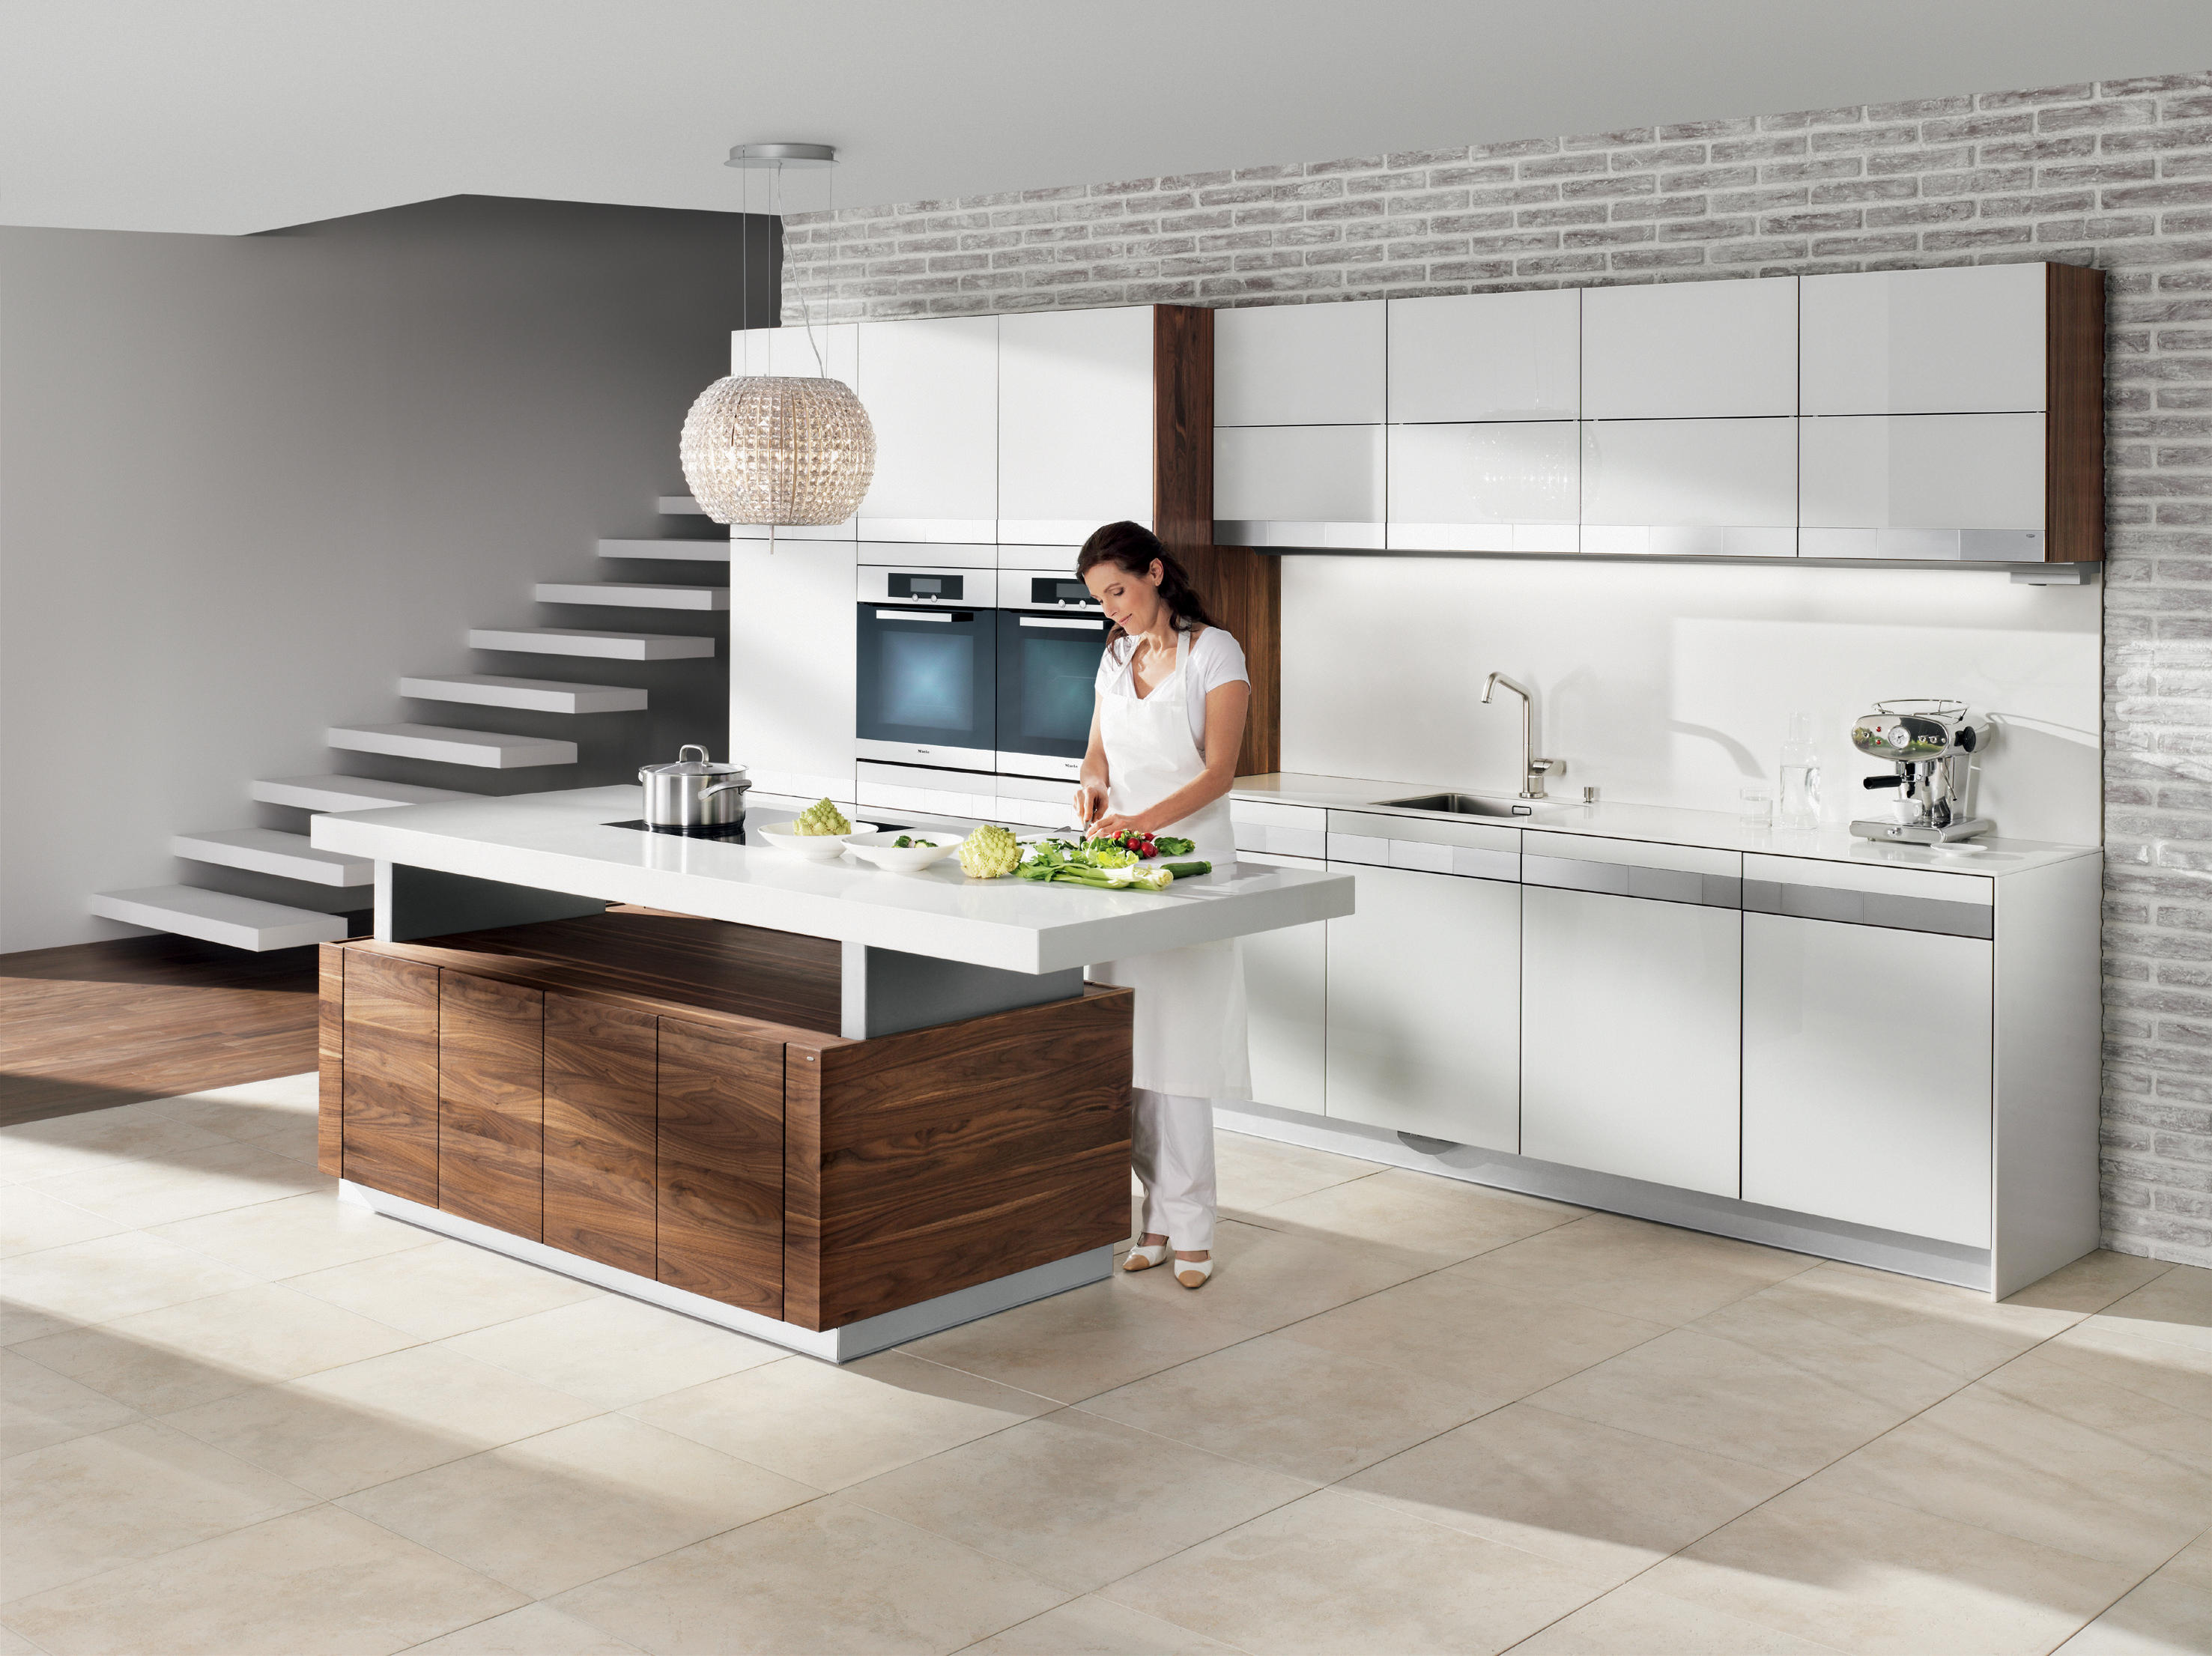 k7 cooking island island kitchens from team 7 architonic. Black Bedroom Furniture Sets. Home Design Ideas